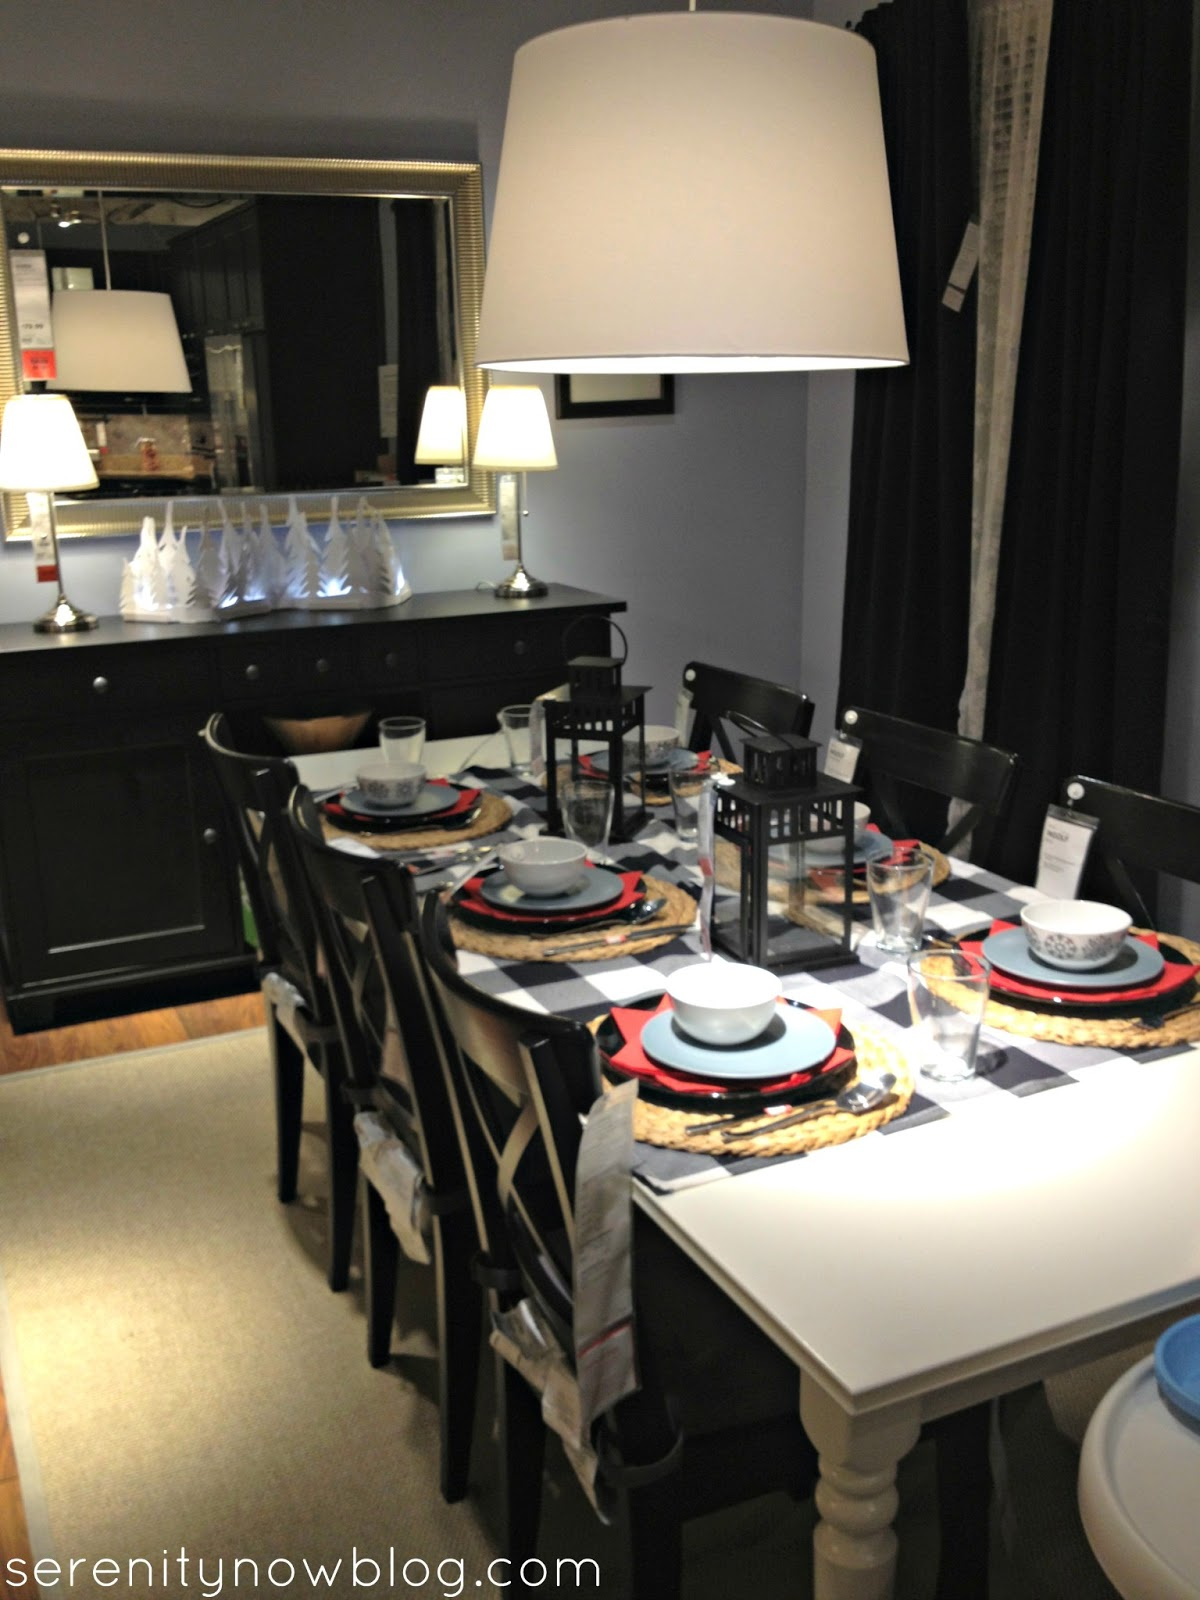 Serenity Now IKEA Shopping Trip and Home Decor Inspiration Jan 2013